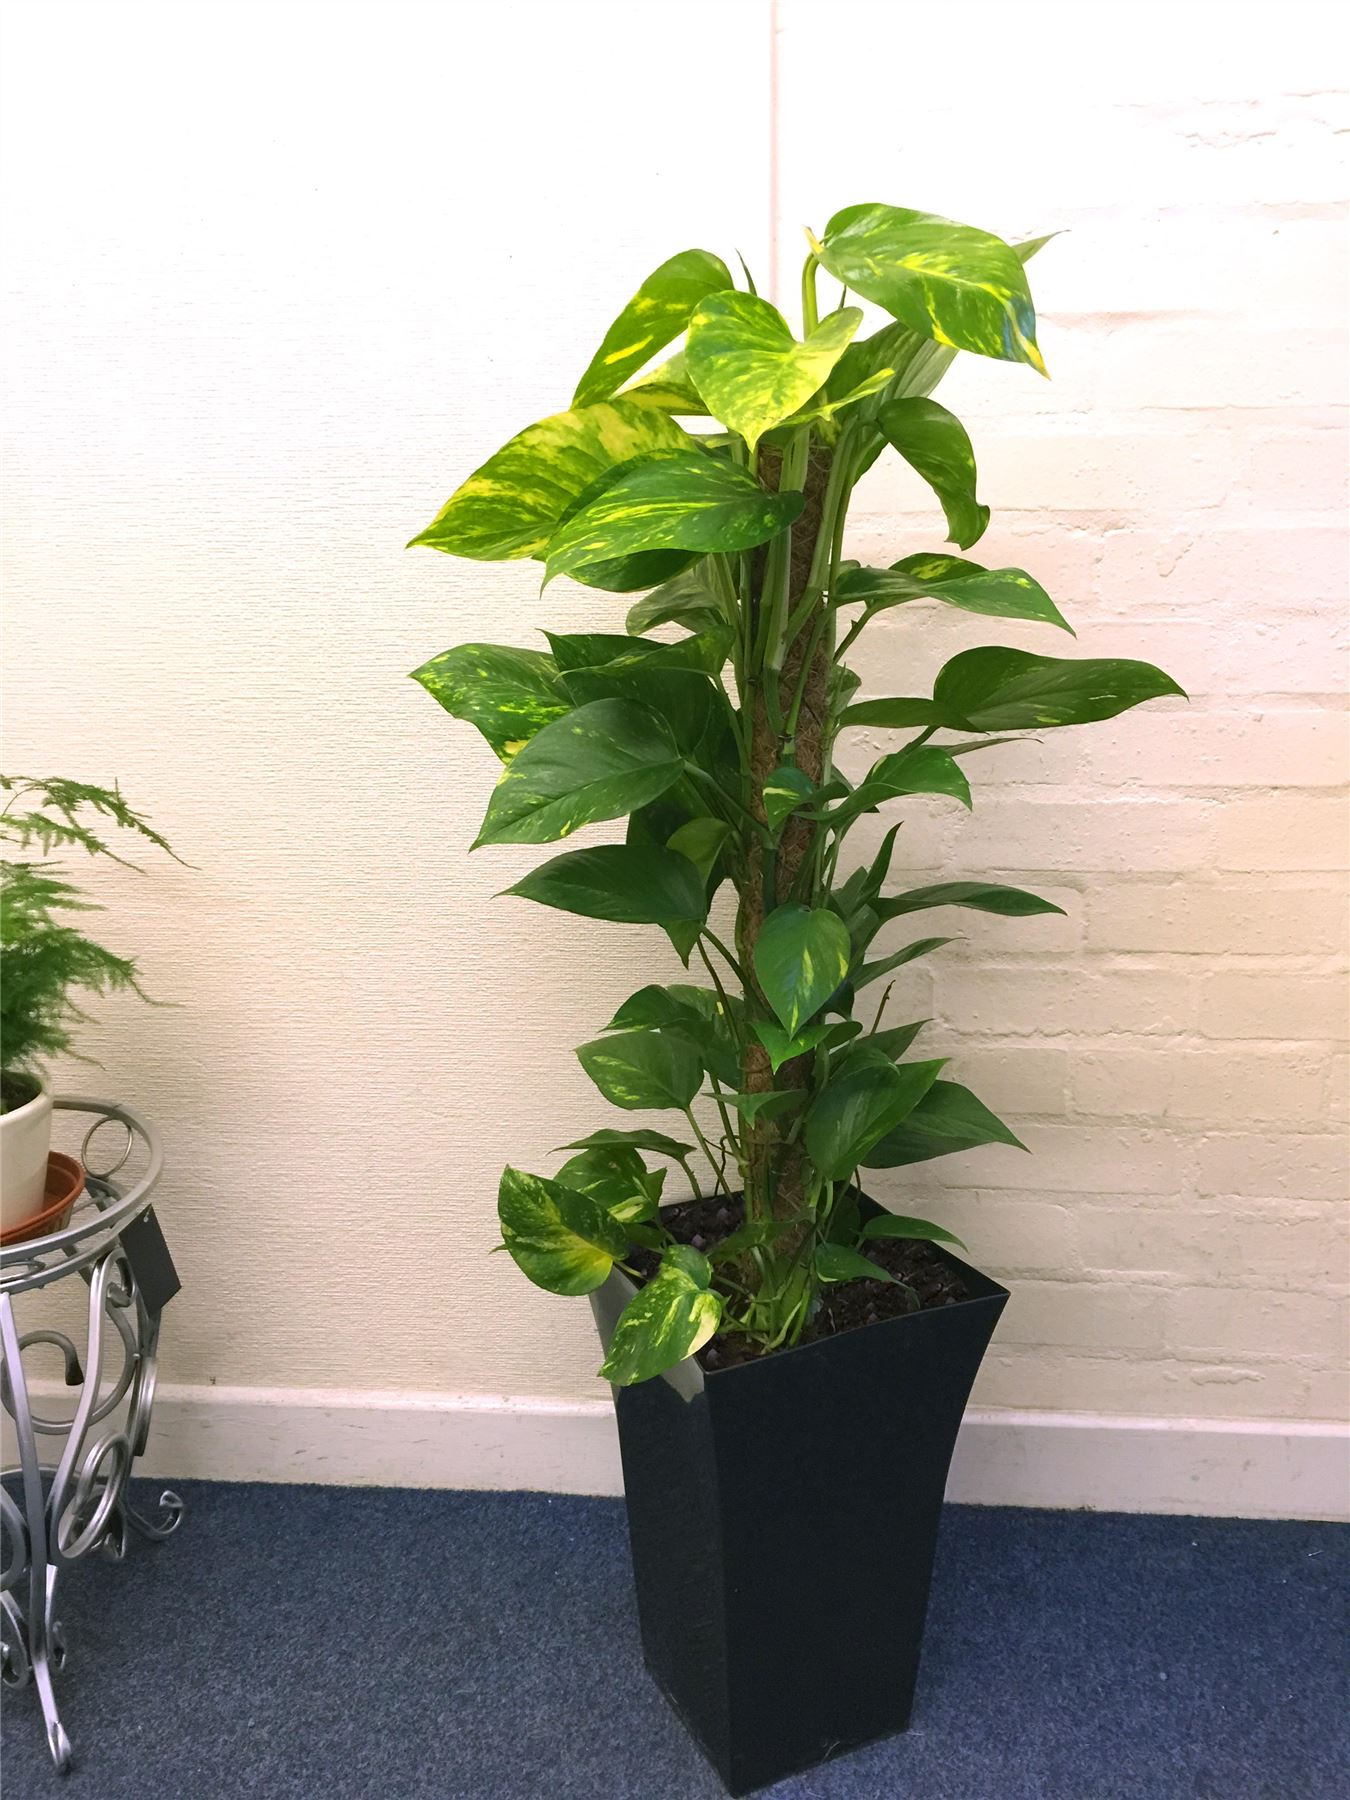 Large Indoor House Plants For Sale 1 Large Indoor Tree Milano Gloss Pot Office House